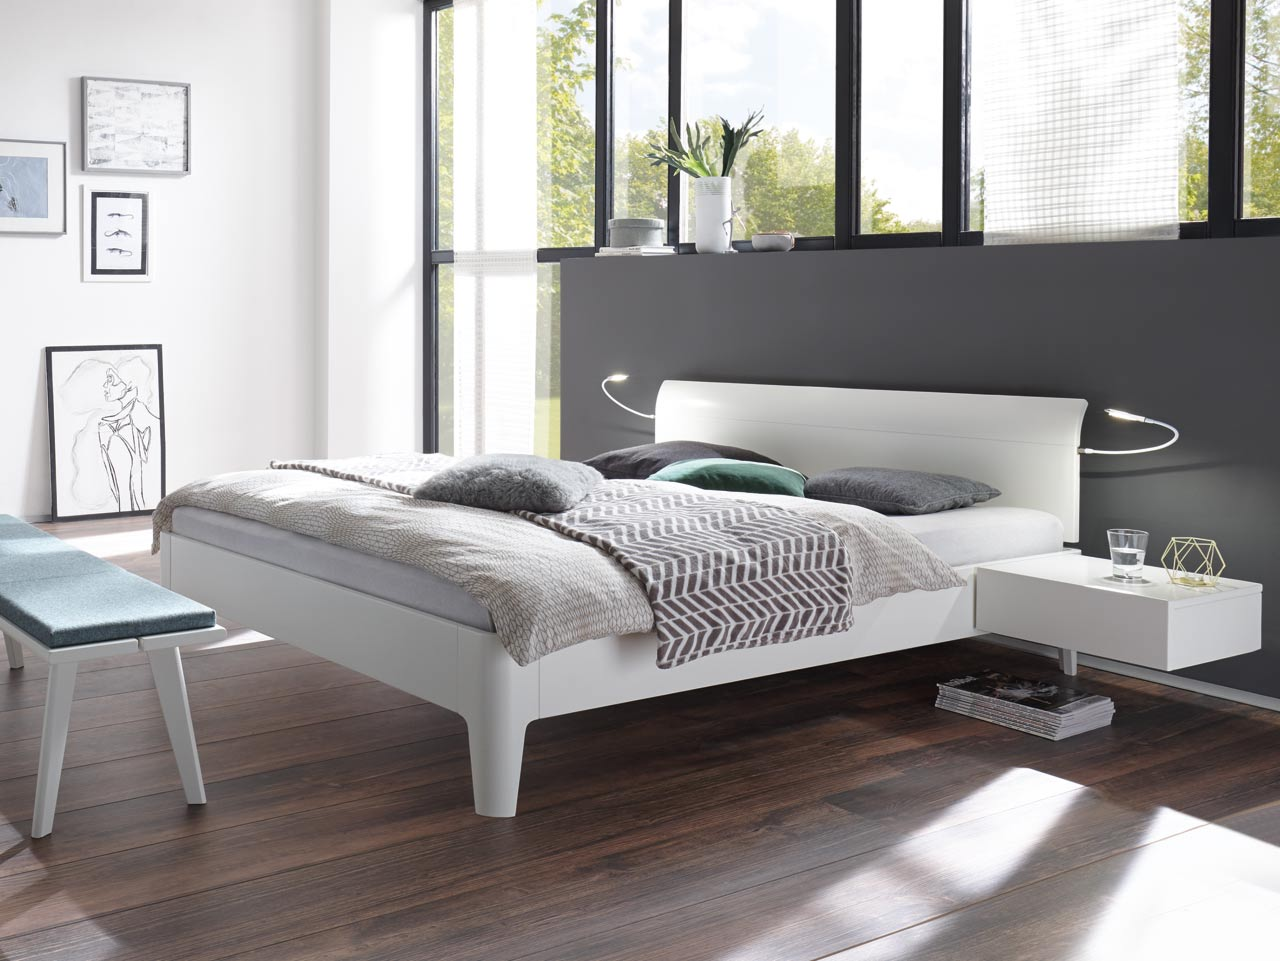 hasena fine line bett xylo vola. Black Bedroom Furniture Sets. Home Design Ideas